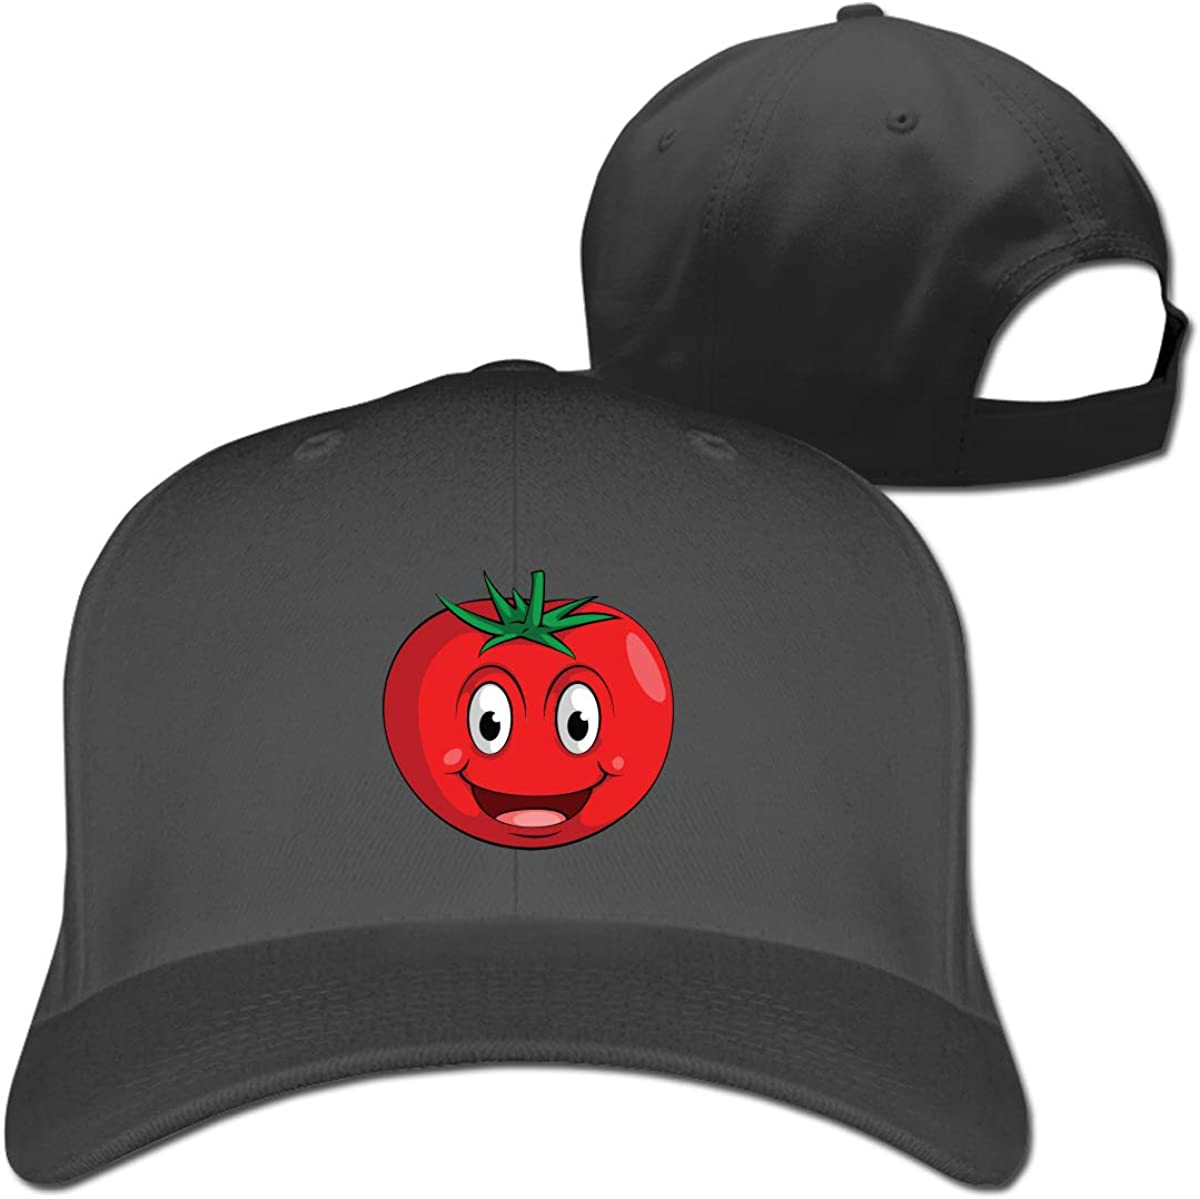 Smile Tomato Classic Adjustable Cotton Baseball Caps Trucker Driver Hat Outdoor Cap Fitted Hats Dad Hat Black